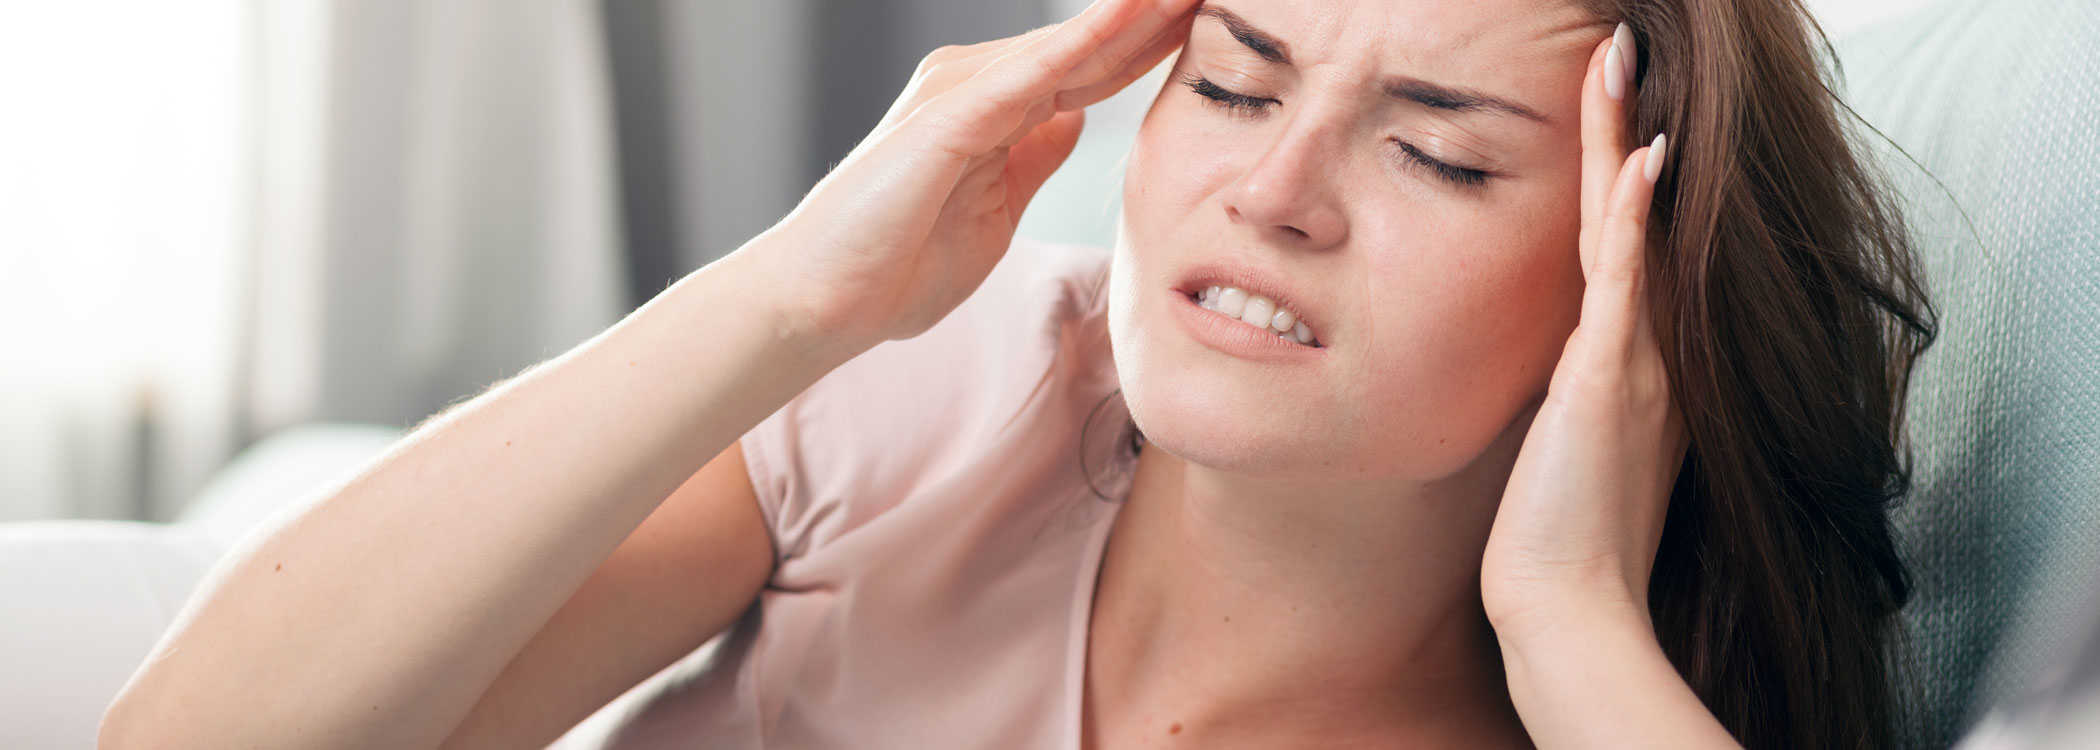 Woman appearing to have a headache due to Bruxism.